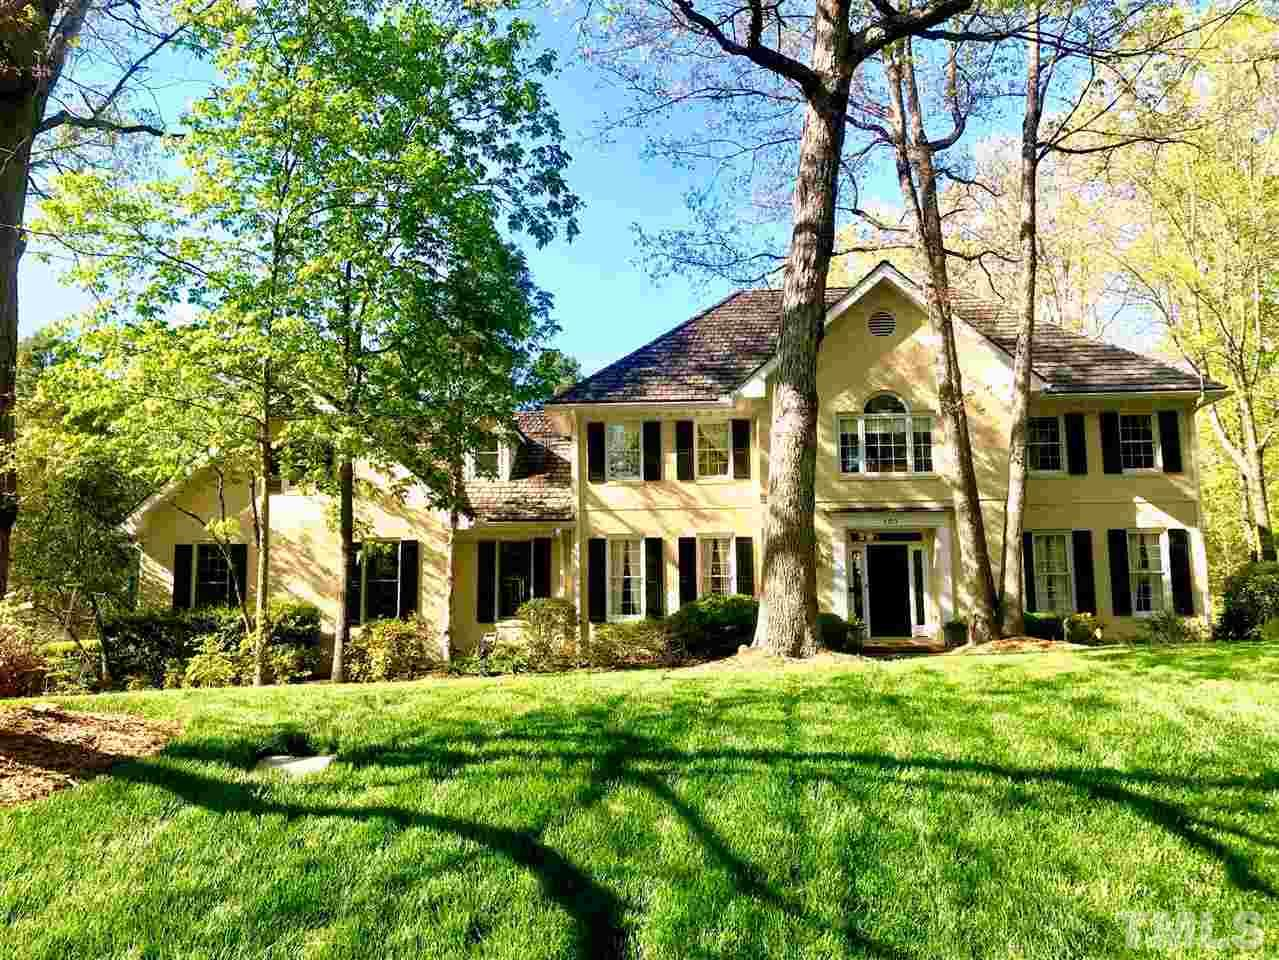 Listing Courtesy Of Chapel Hill Realty Group Inc